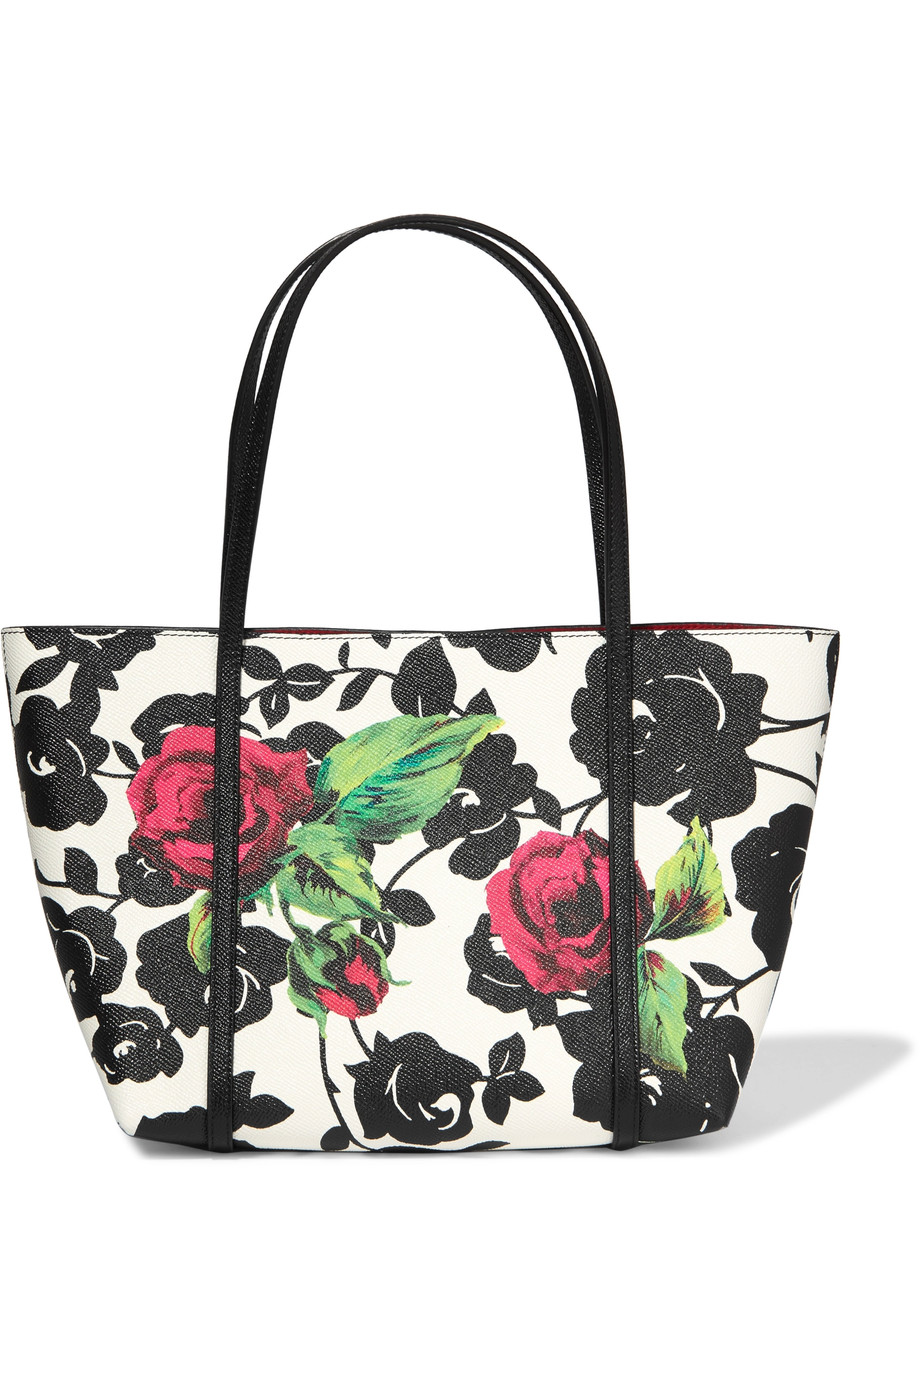 cf5872e3c7 Dolce   Gabbana Floral-Print Textured-Leather Tote